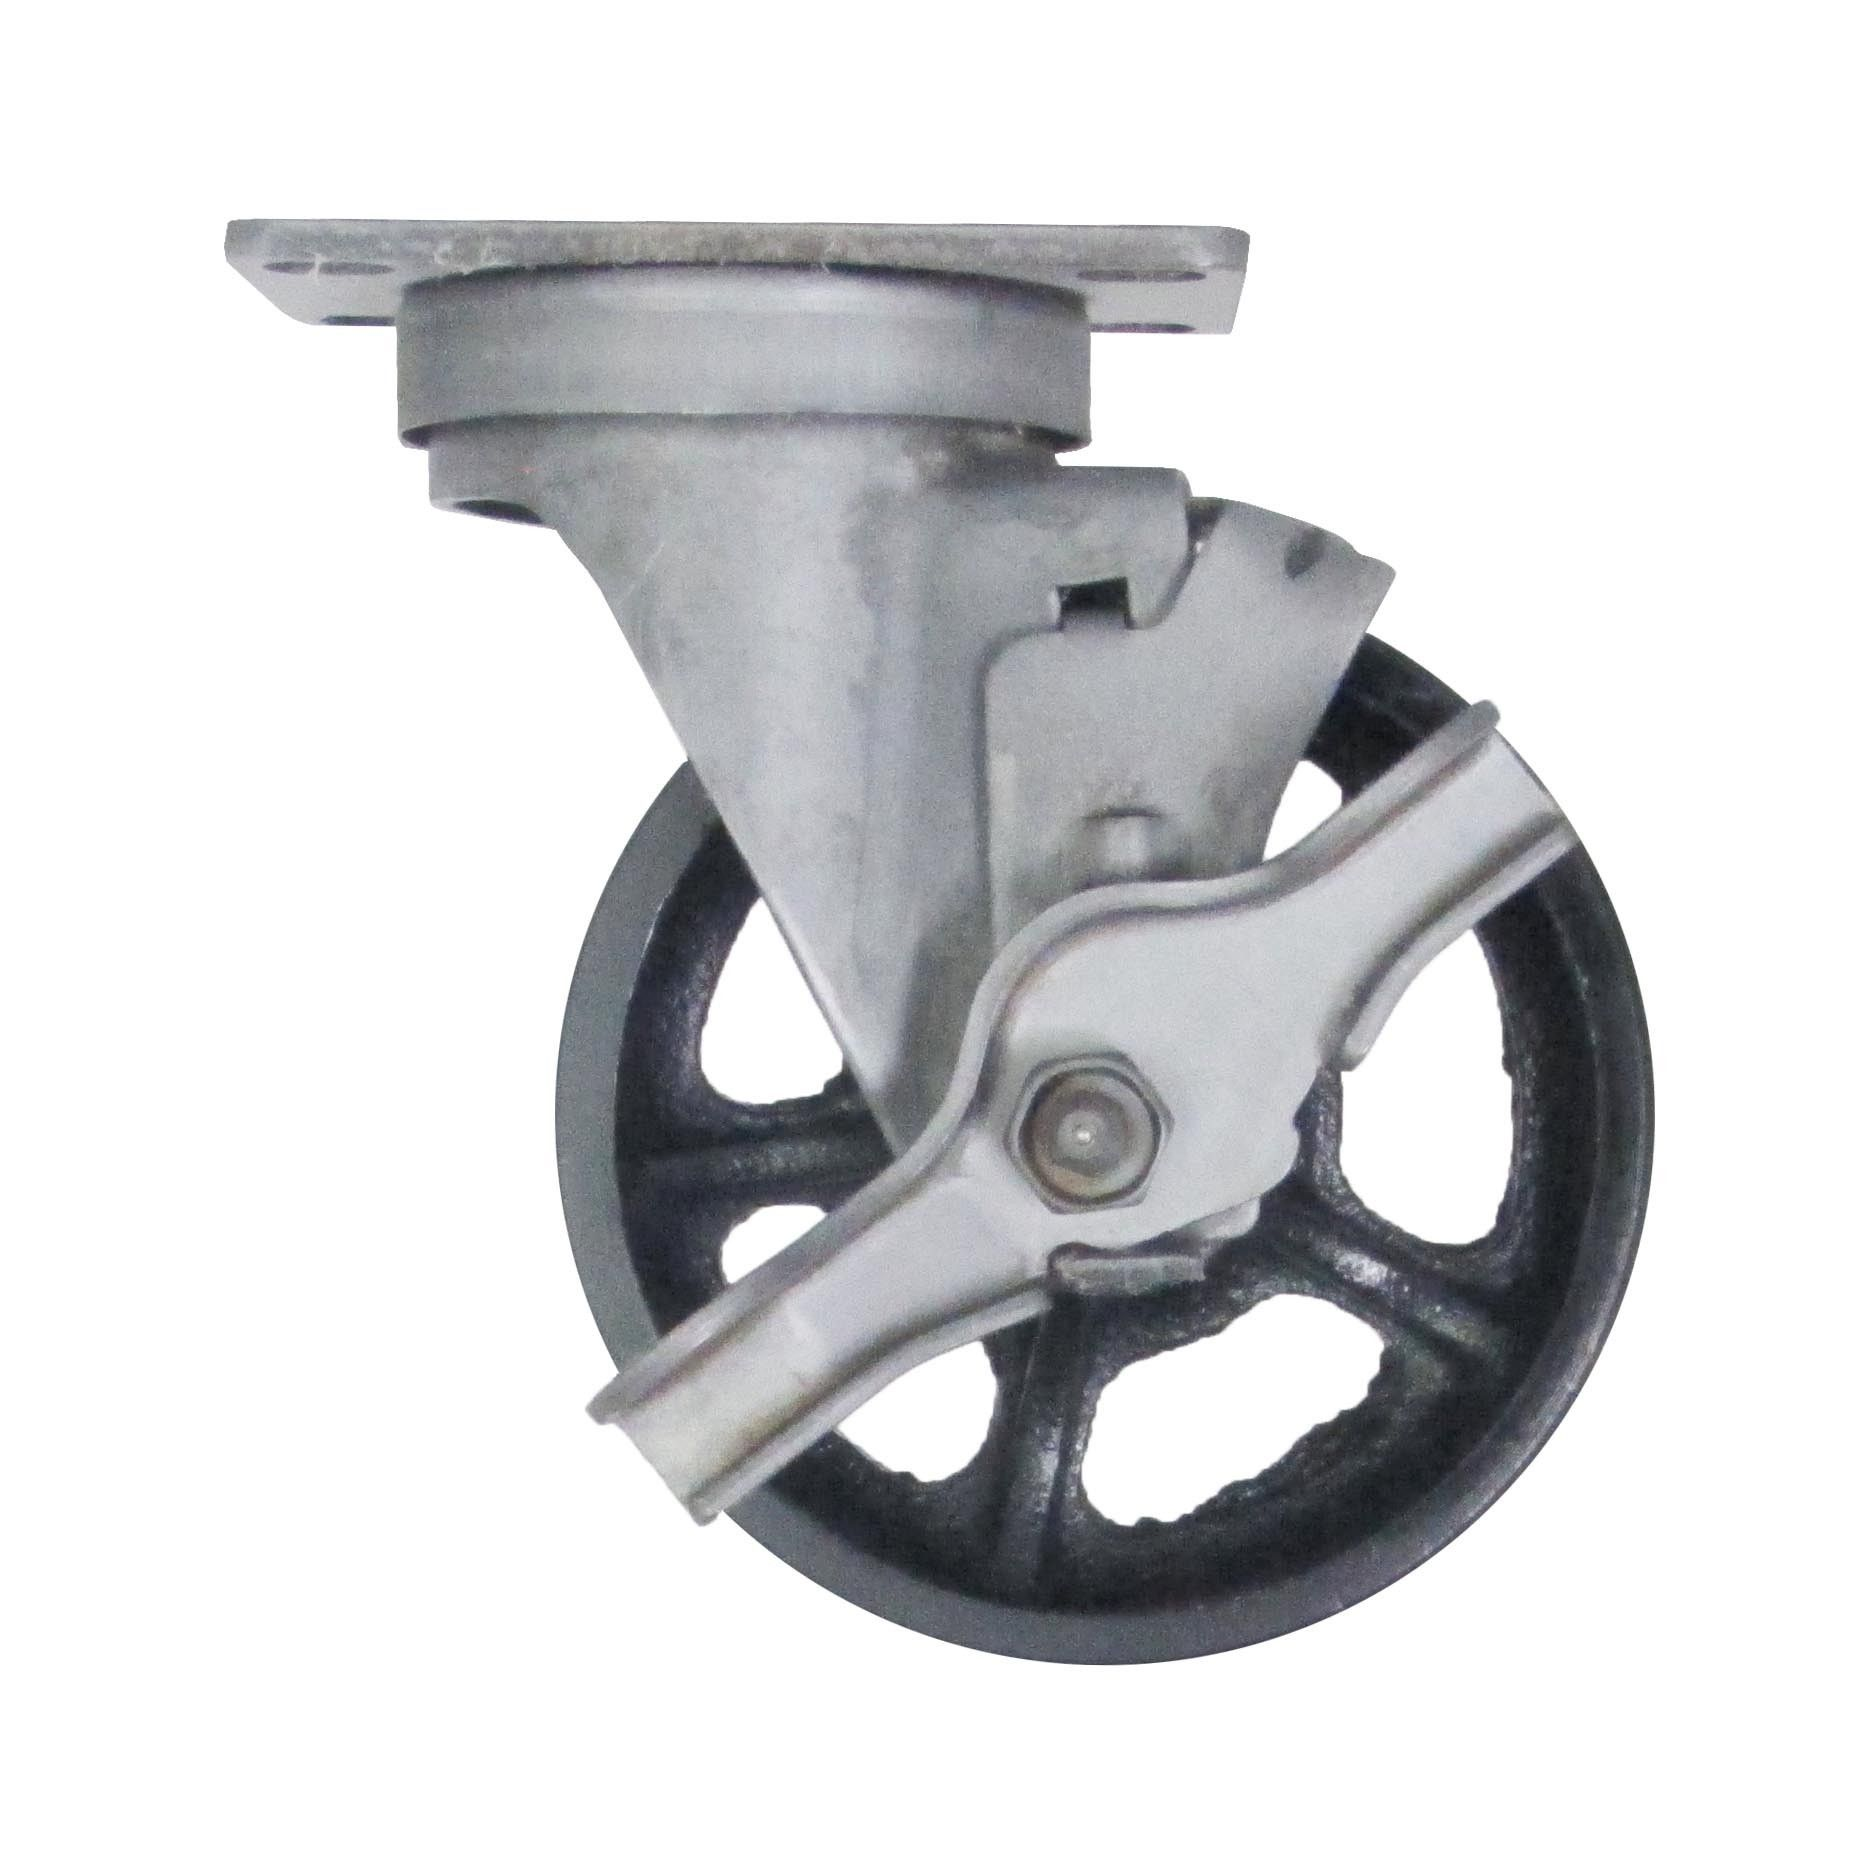 Brass Castor Wheels 25mm with Screw Fitting by Ross Castors 60kg Load Capacity